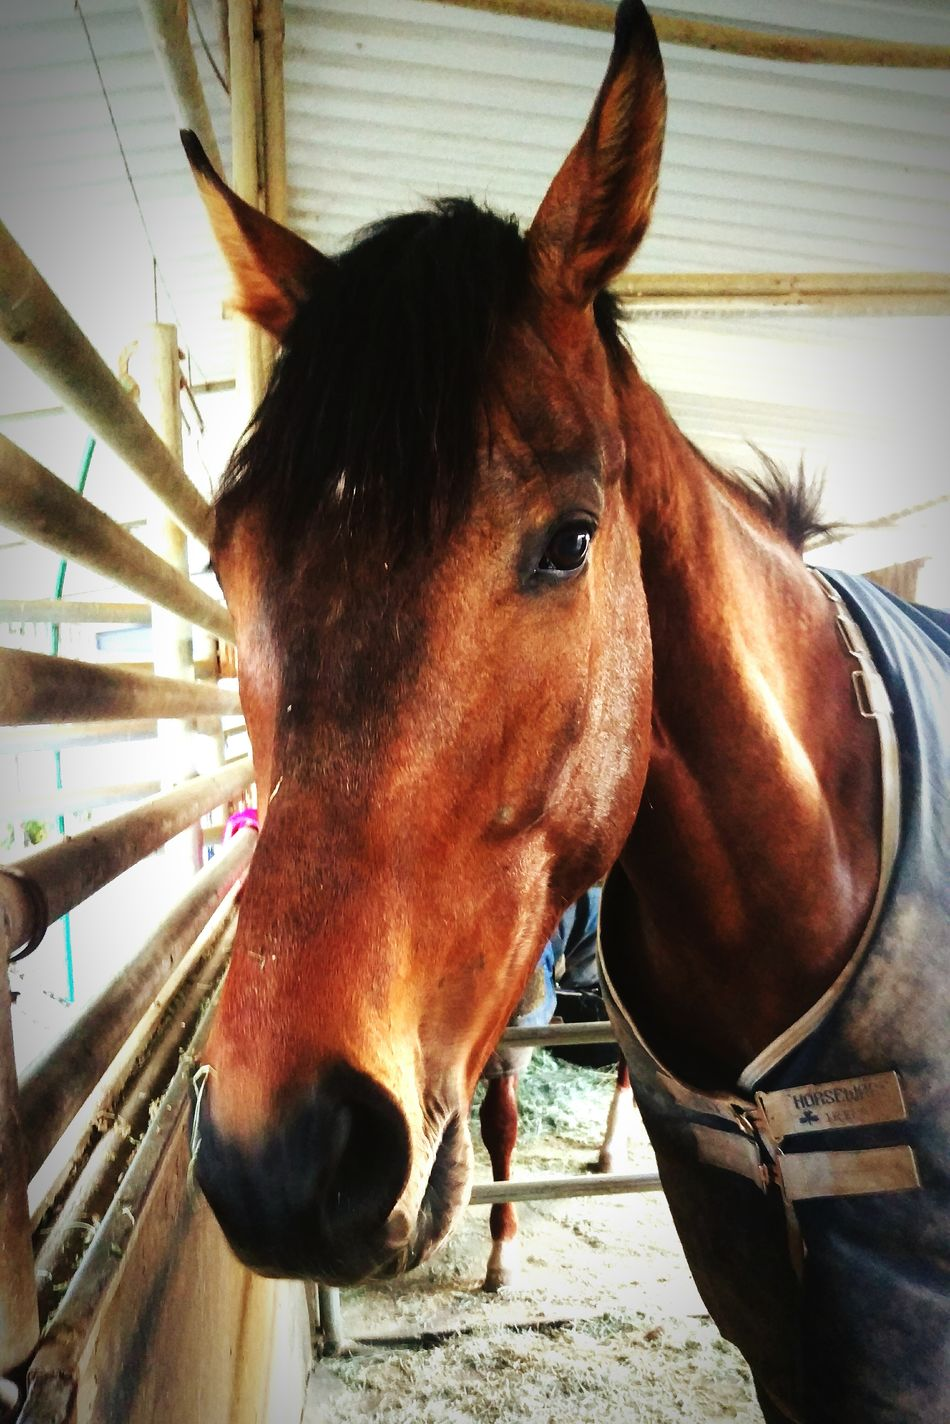 Stud Thouroughbred Horse Race Horse Big Guy Beautiful Animal Four Legged Friend Powerful Friend Long Face Horse Riding Horse Photography  Stables Riding Country Life Equestrian Life Equestrianphotography